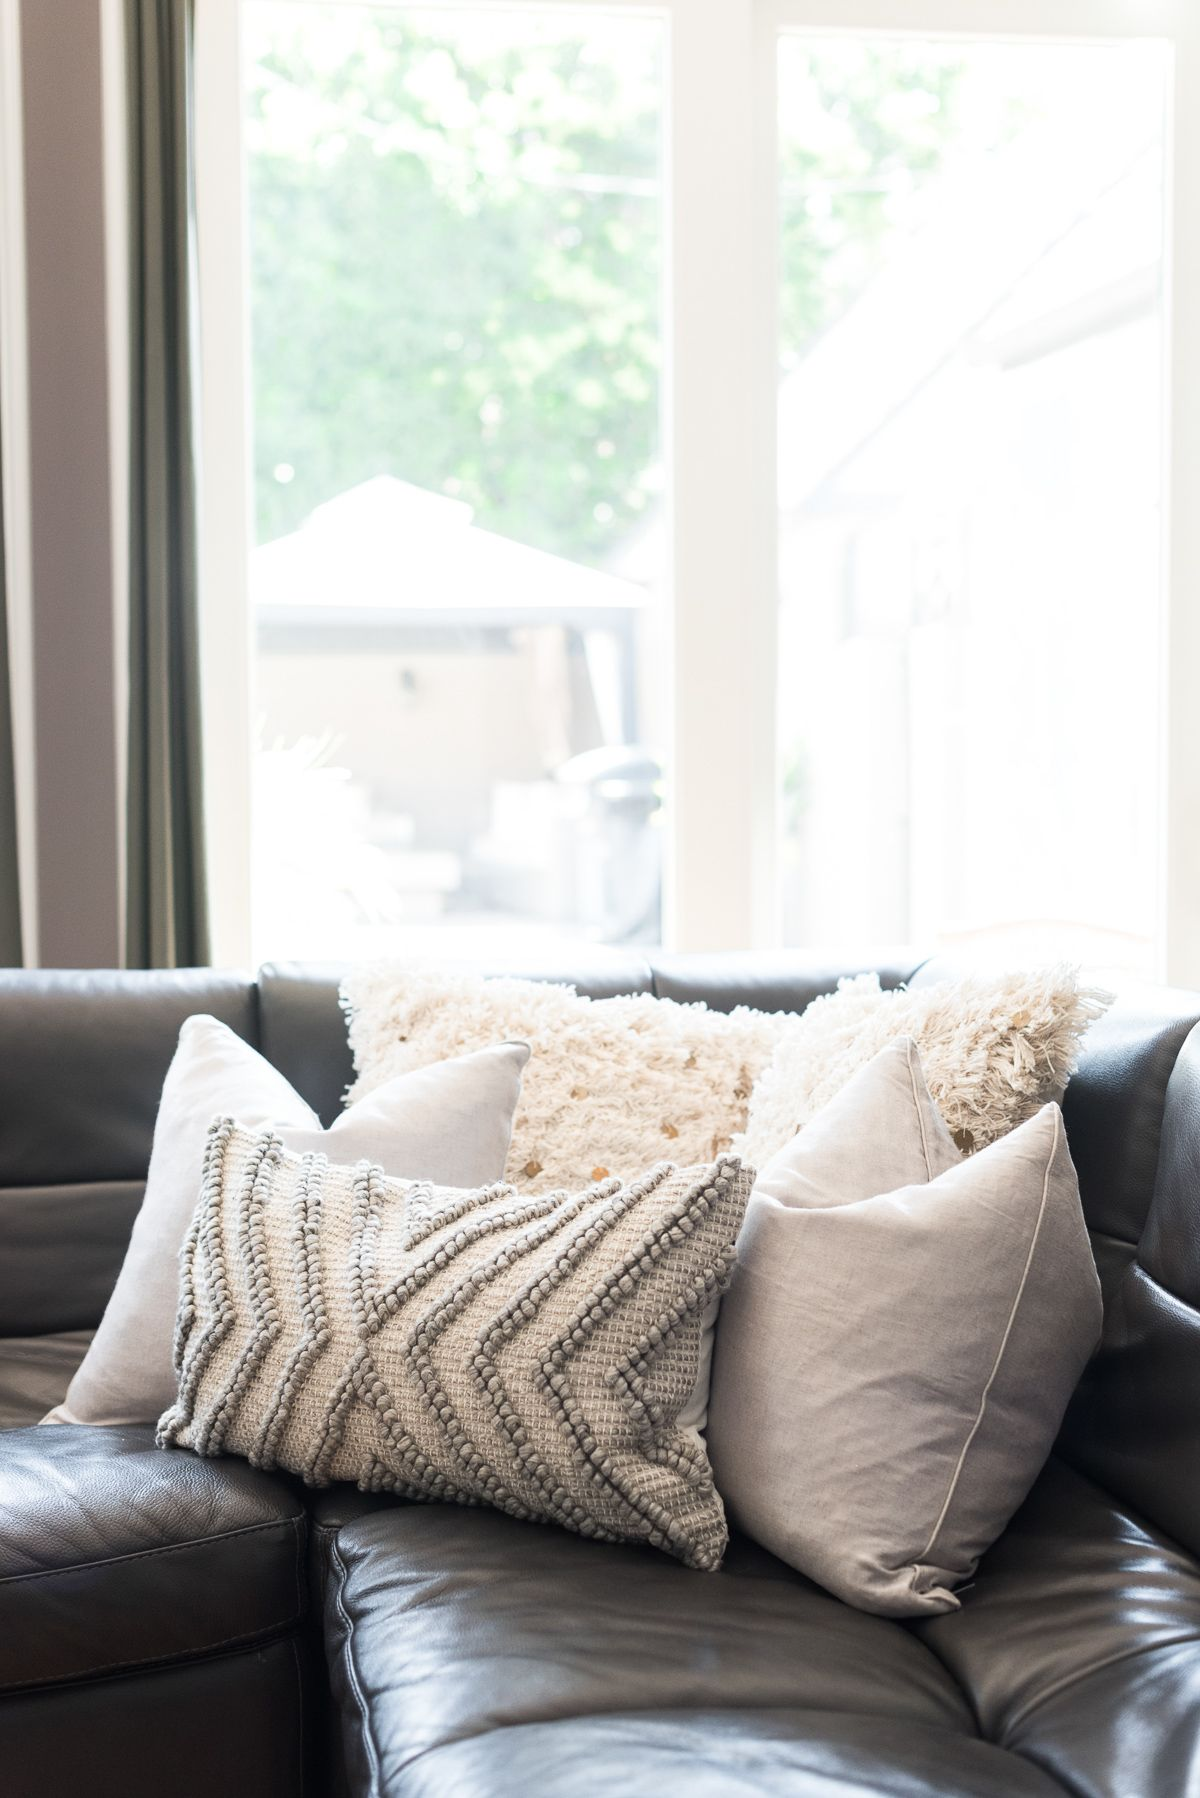 Decorative Pillows For Sofa Part - 32: @homegoods Throw Pillows On @zgallerie Leather Sectional Sofa In Family  Room. #HelloGorgeous